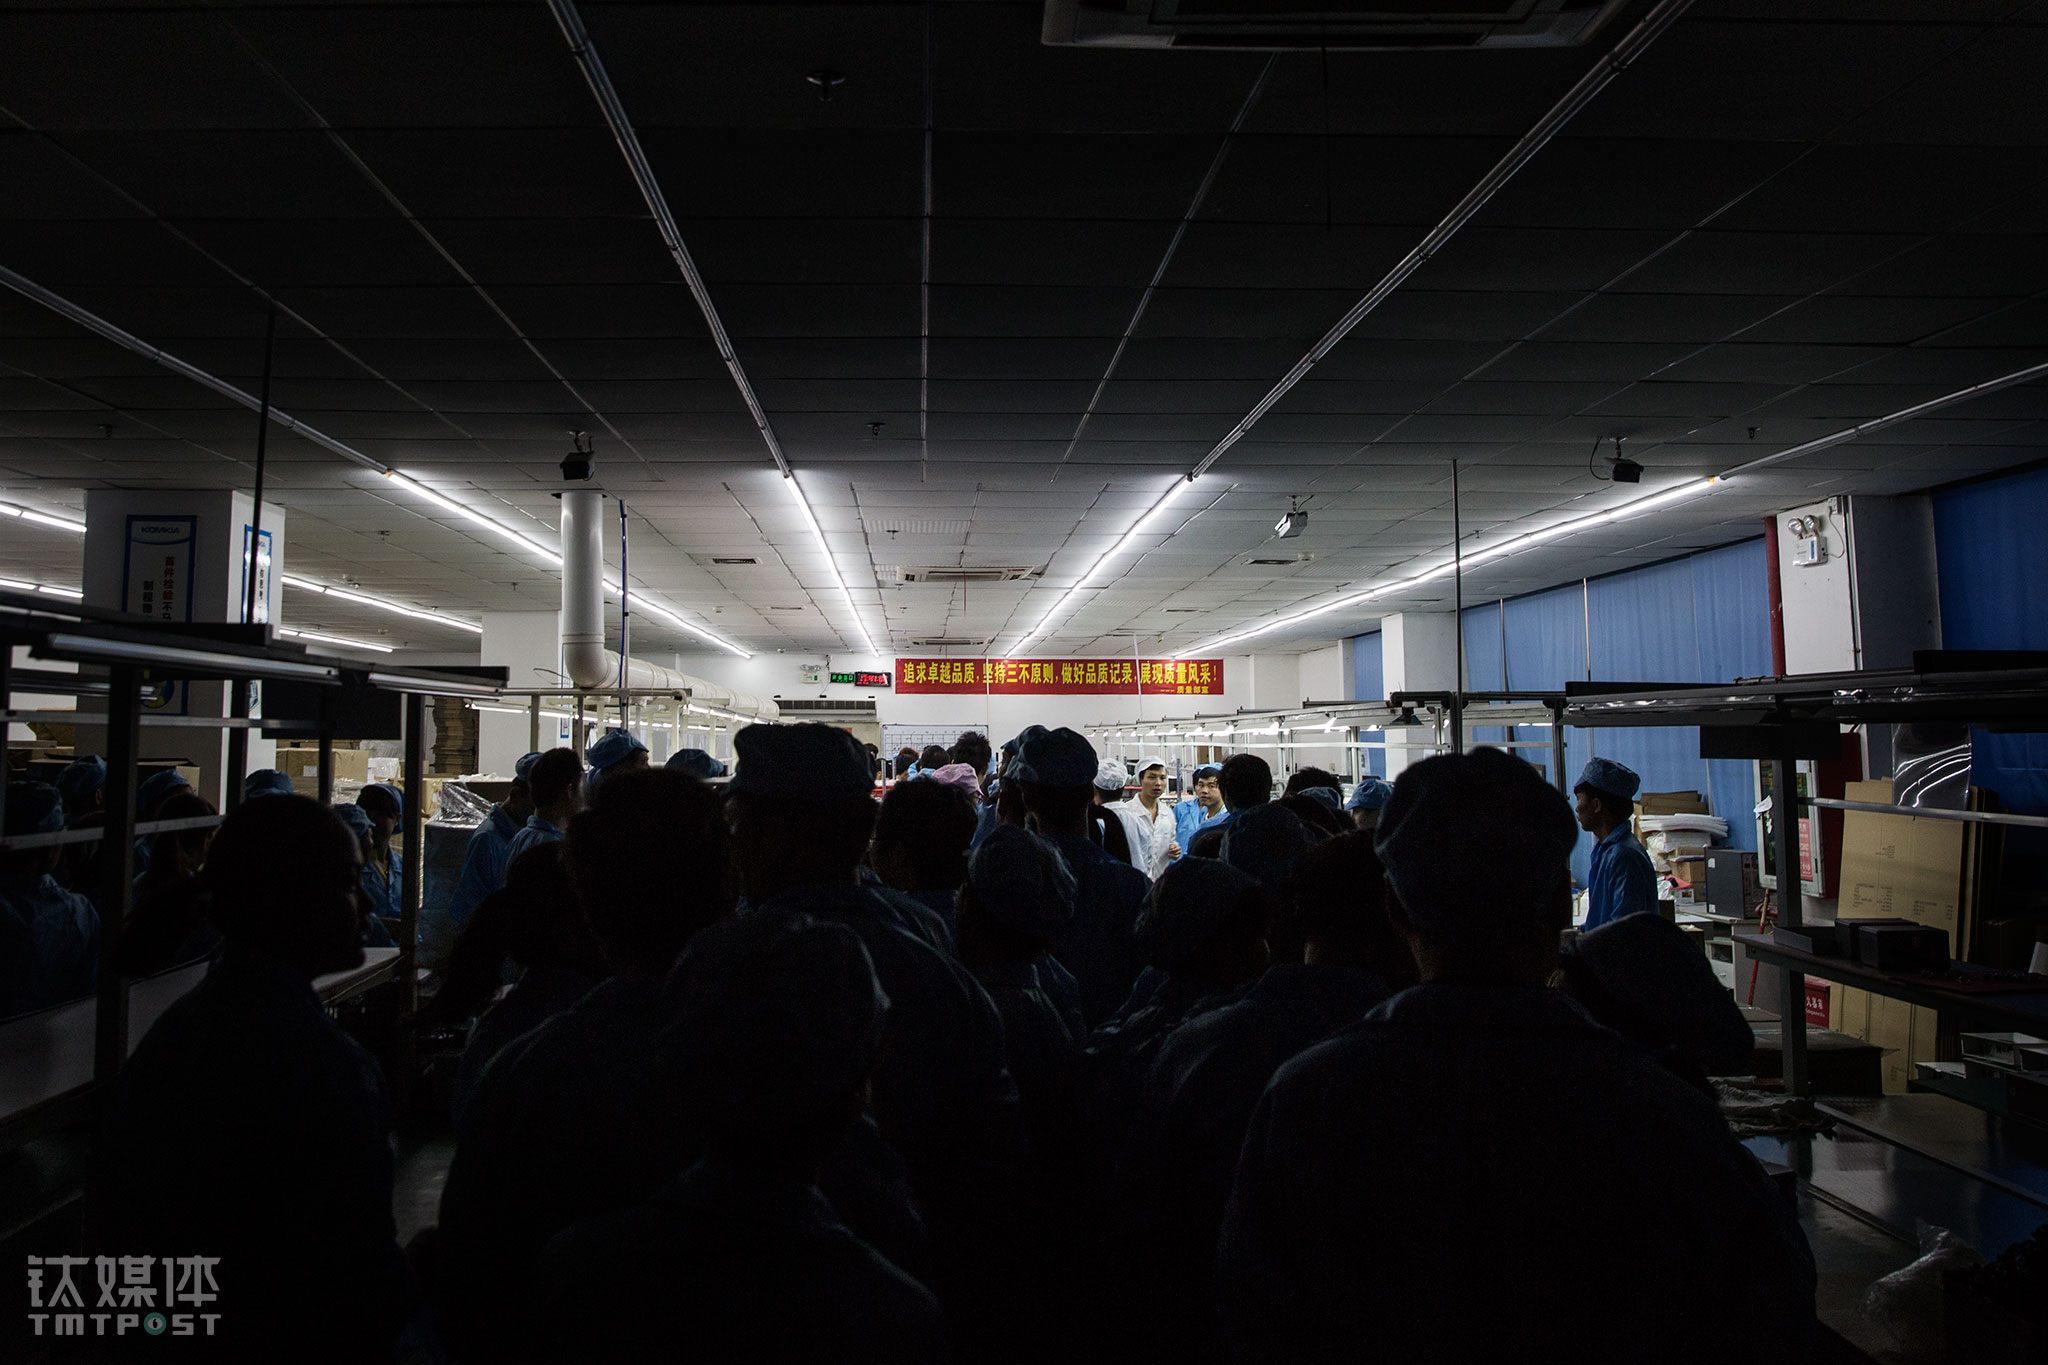 The bell rang, calling it a day. 200 workers started to walk towards to the exit. The smog in Beijing had worsened on that day, bringing up the orders on smart masks and air purifiers. These workers would have to come back in one hour for overtime.